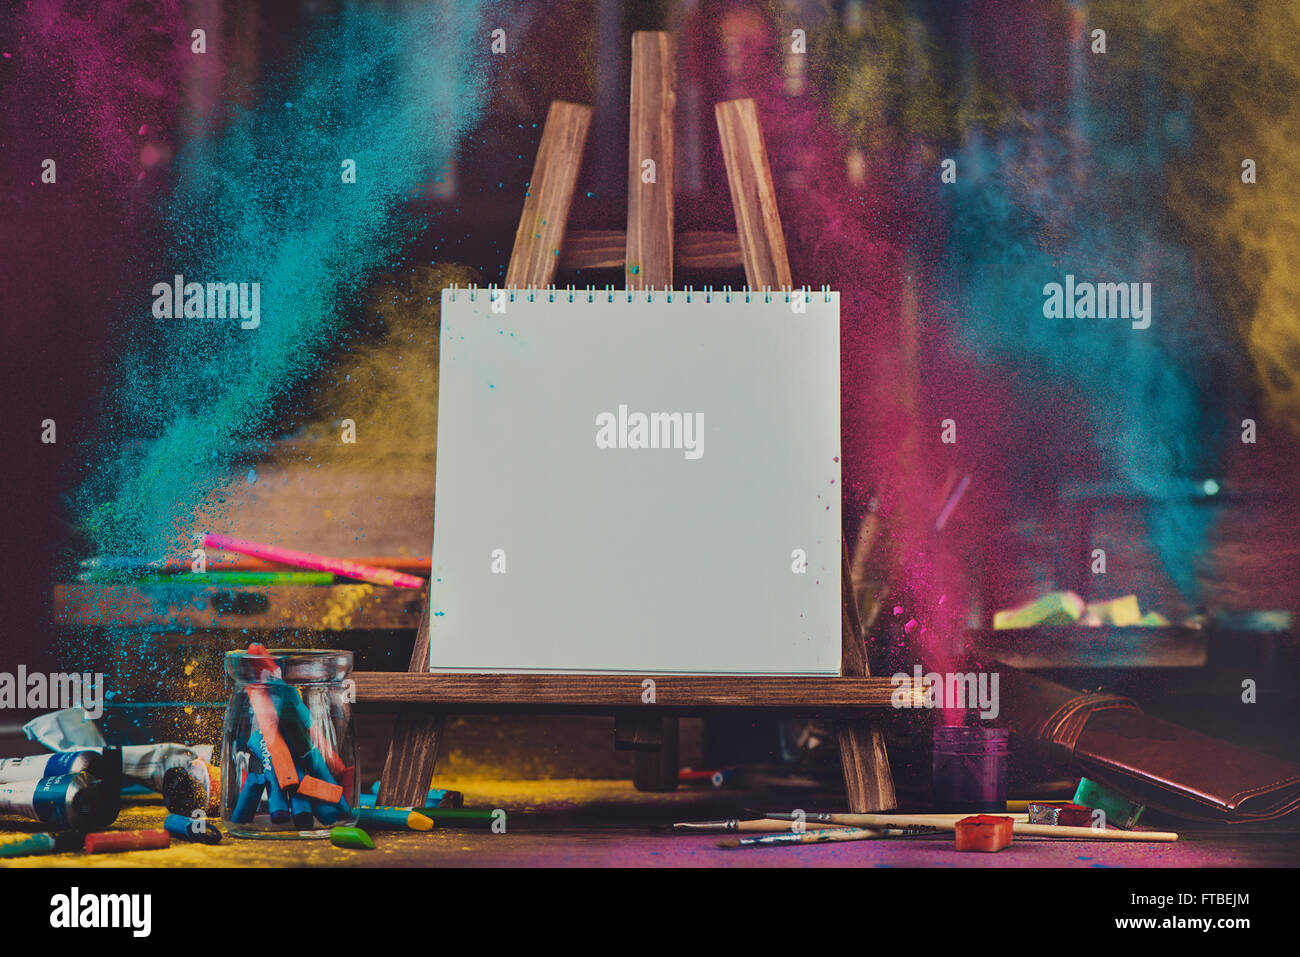 Stay inspired! - Stock Image